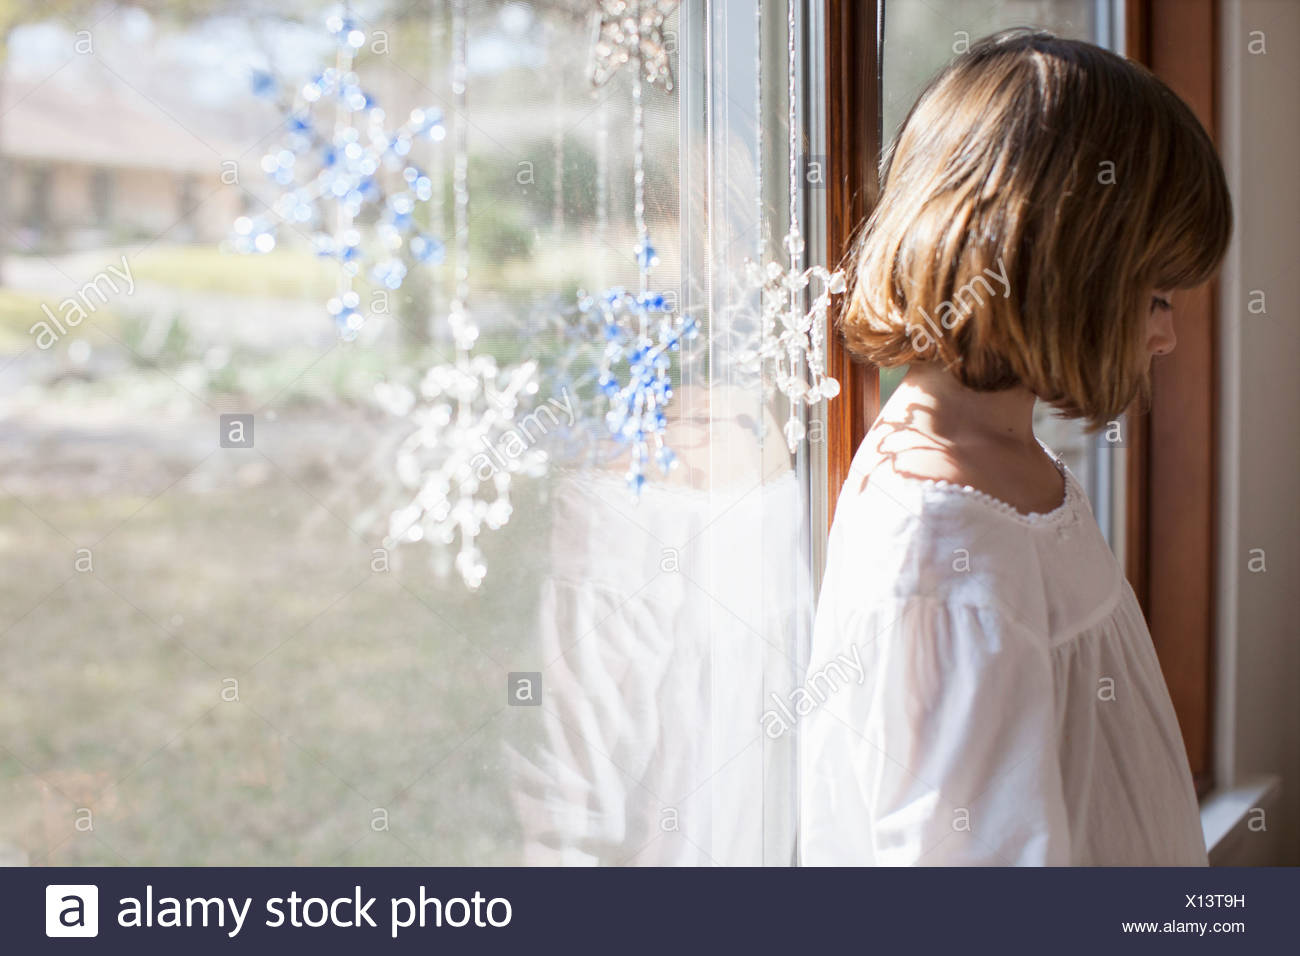 Side view of child beside dangling christmas ornaments - Stock Image